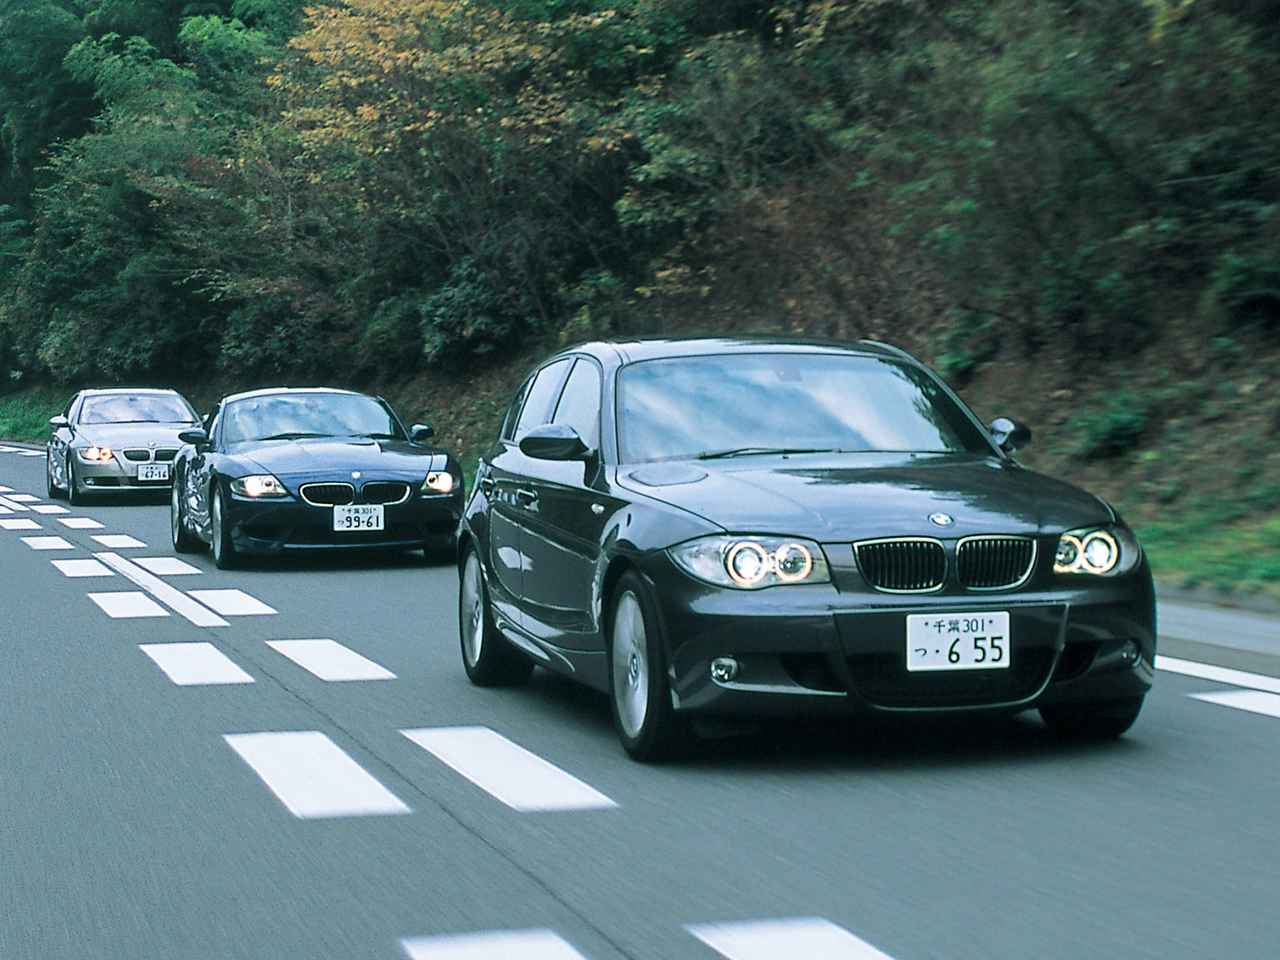 Images : 1番目の画像 - BMW 335i クーぺ、130i Mスポーツ、Z4 Mクーペ - LAWRENCE - Motorcycle x Cars + α = Your Life.